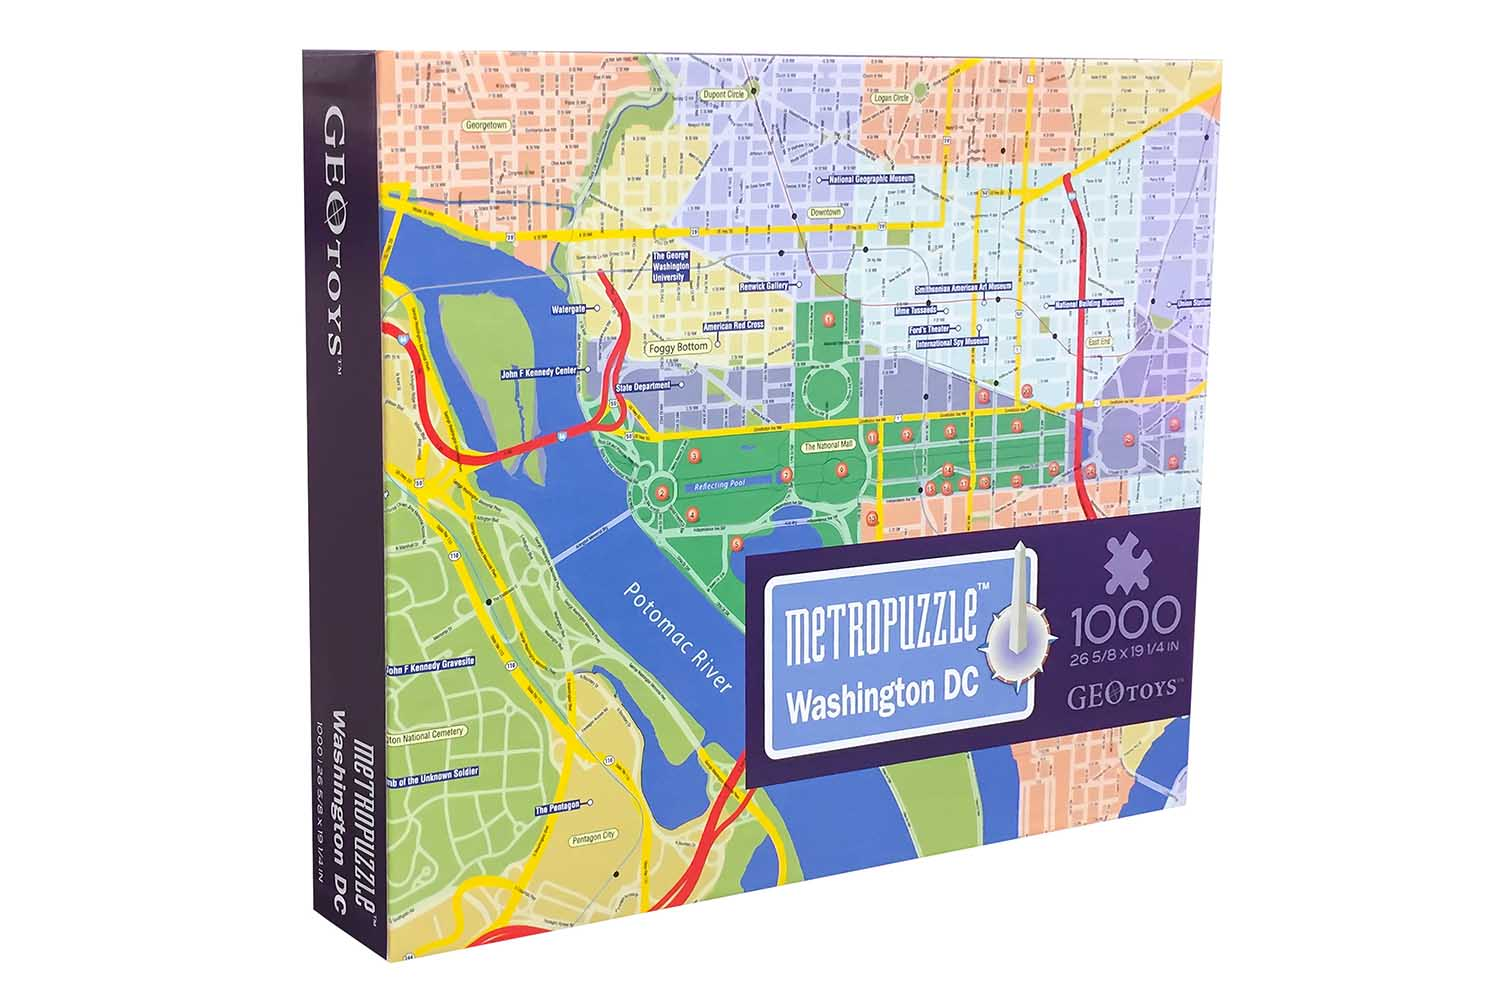 Washington, DC MetroPuzzle Travel Jigsaw Puzzle